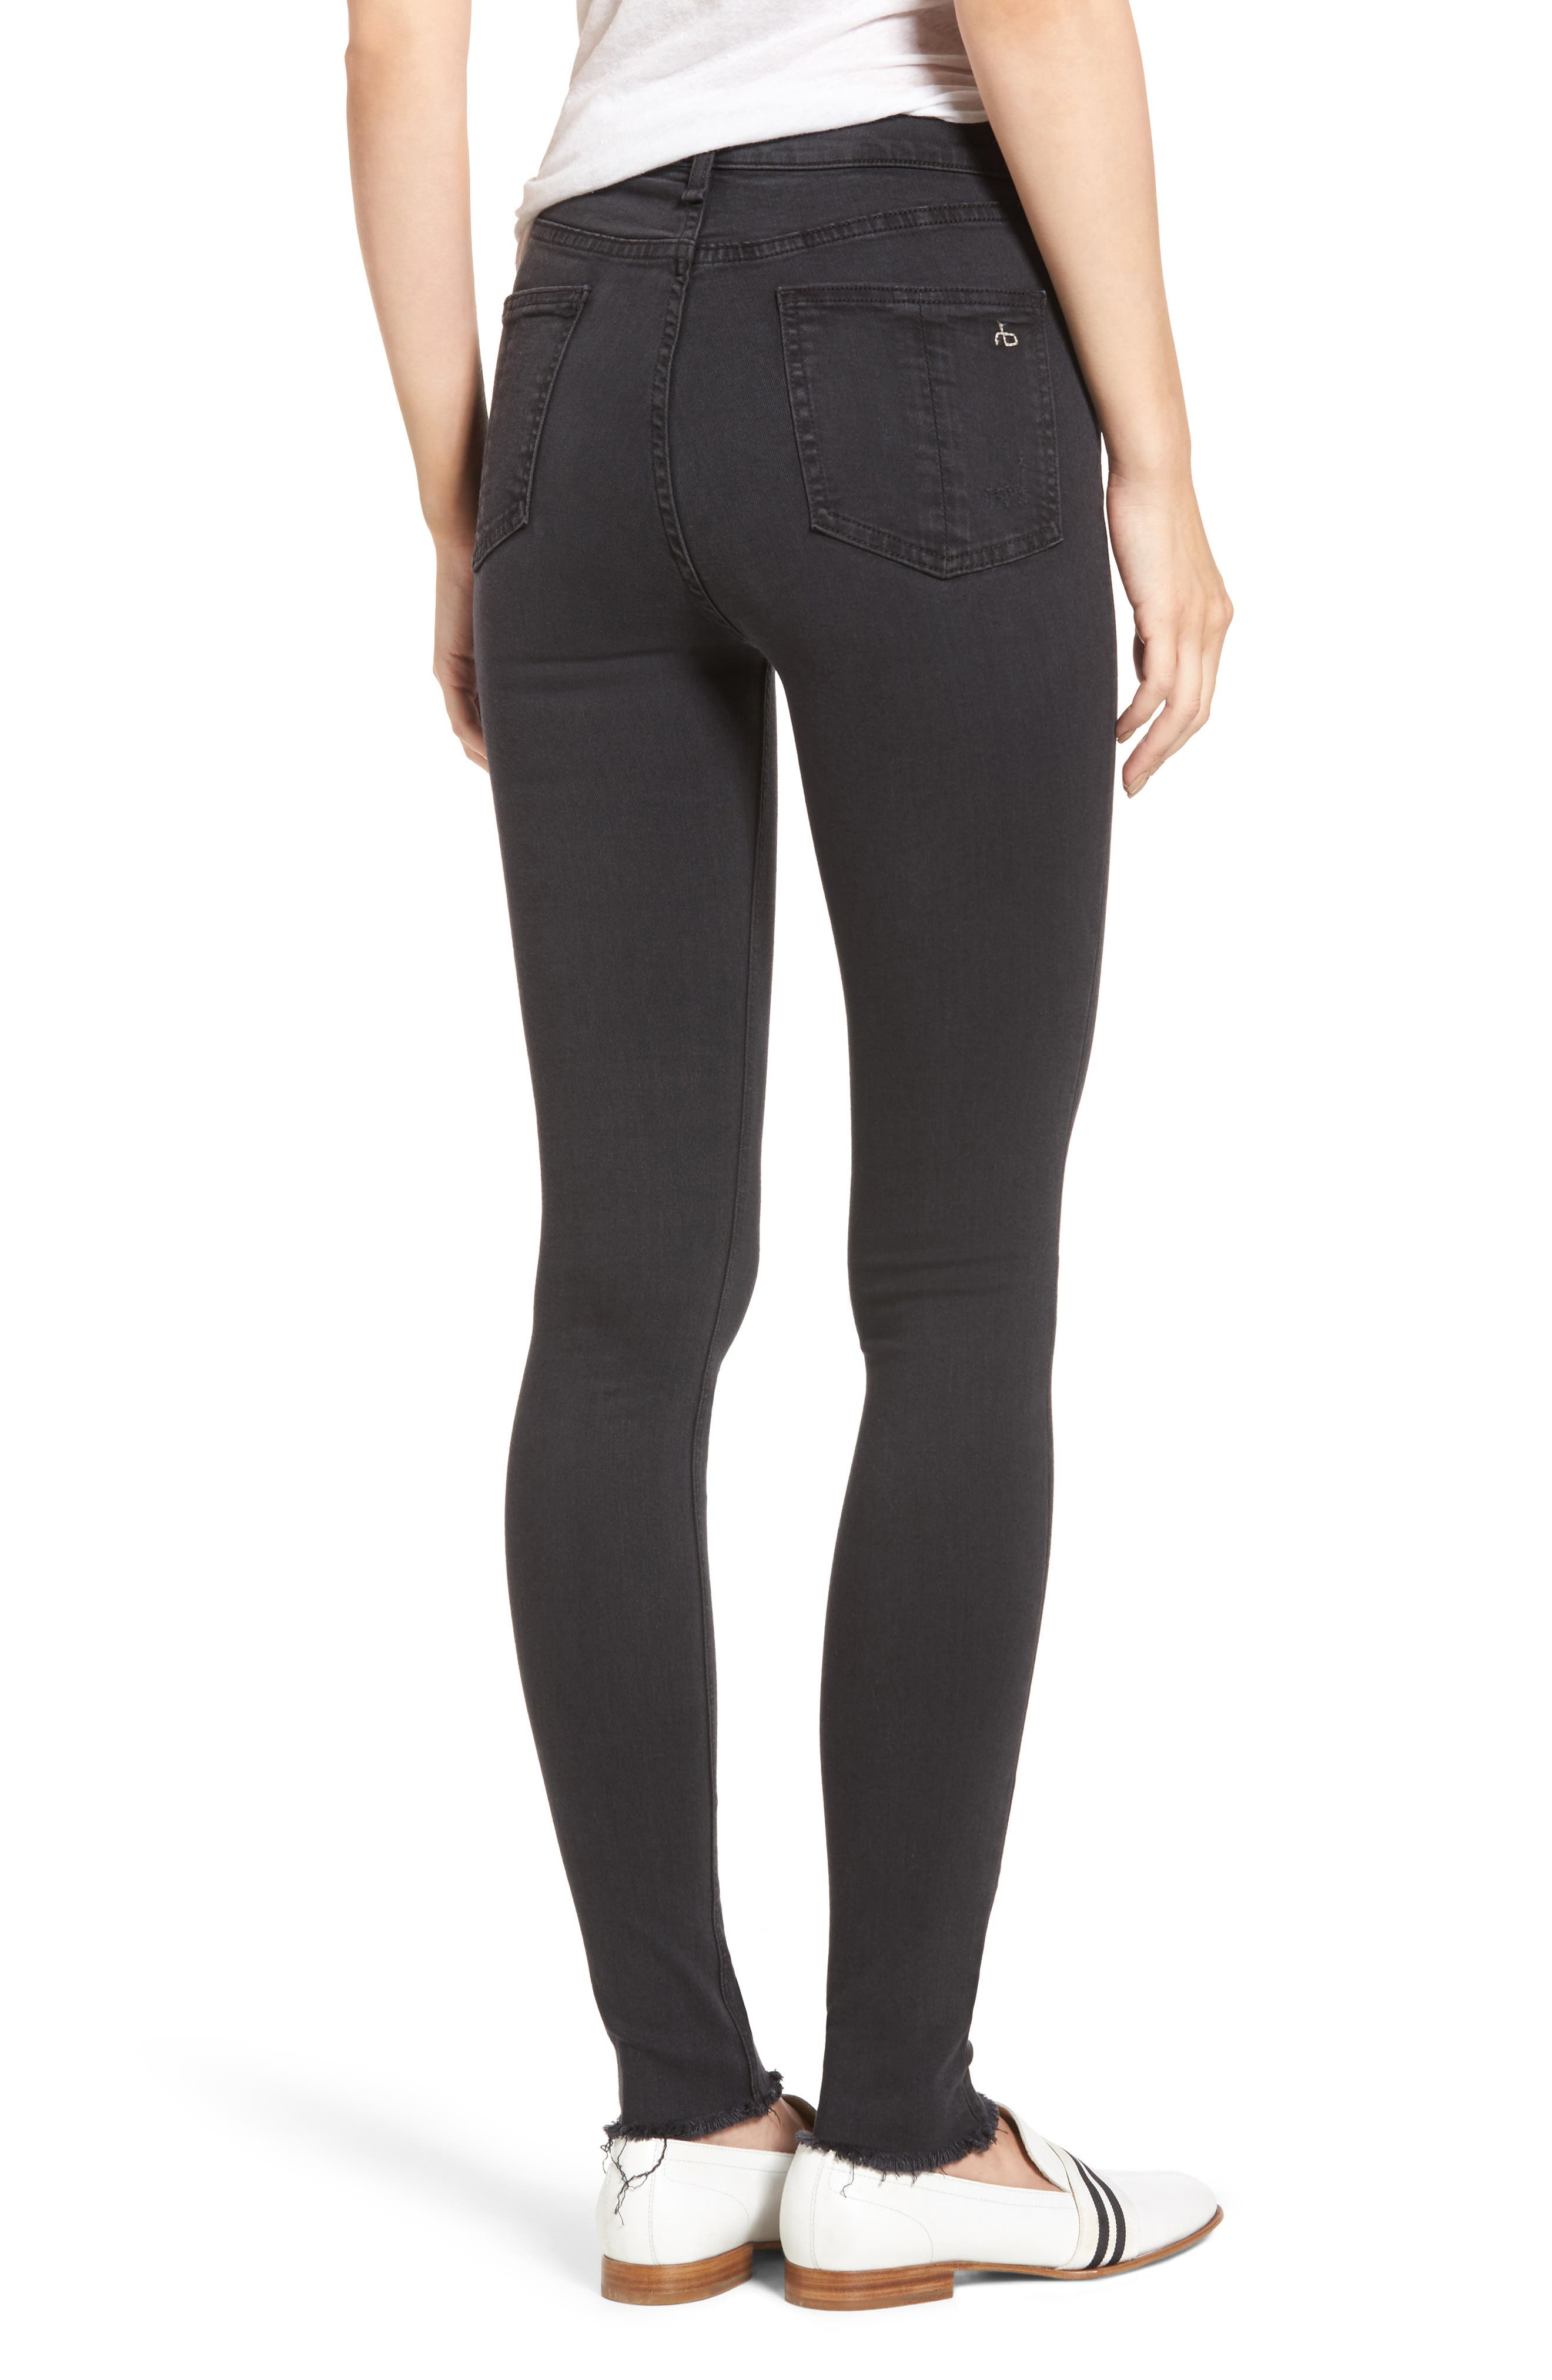 Ripped High Waist Skinny Jeans,                             Alternate thumbnail 2, color,                             Night With Holes